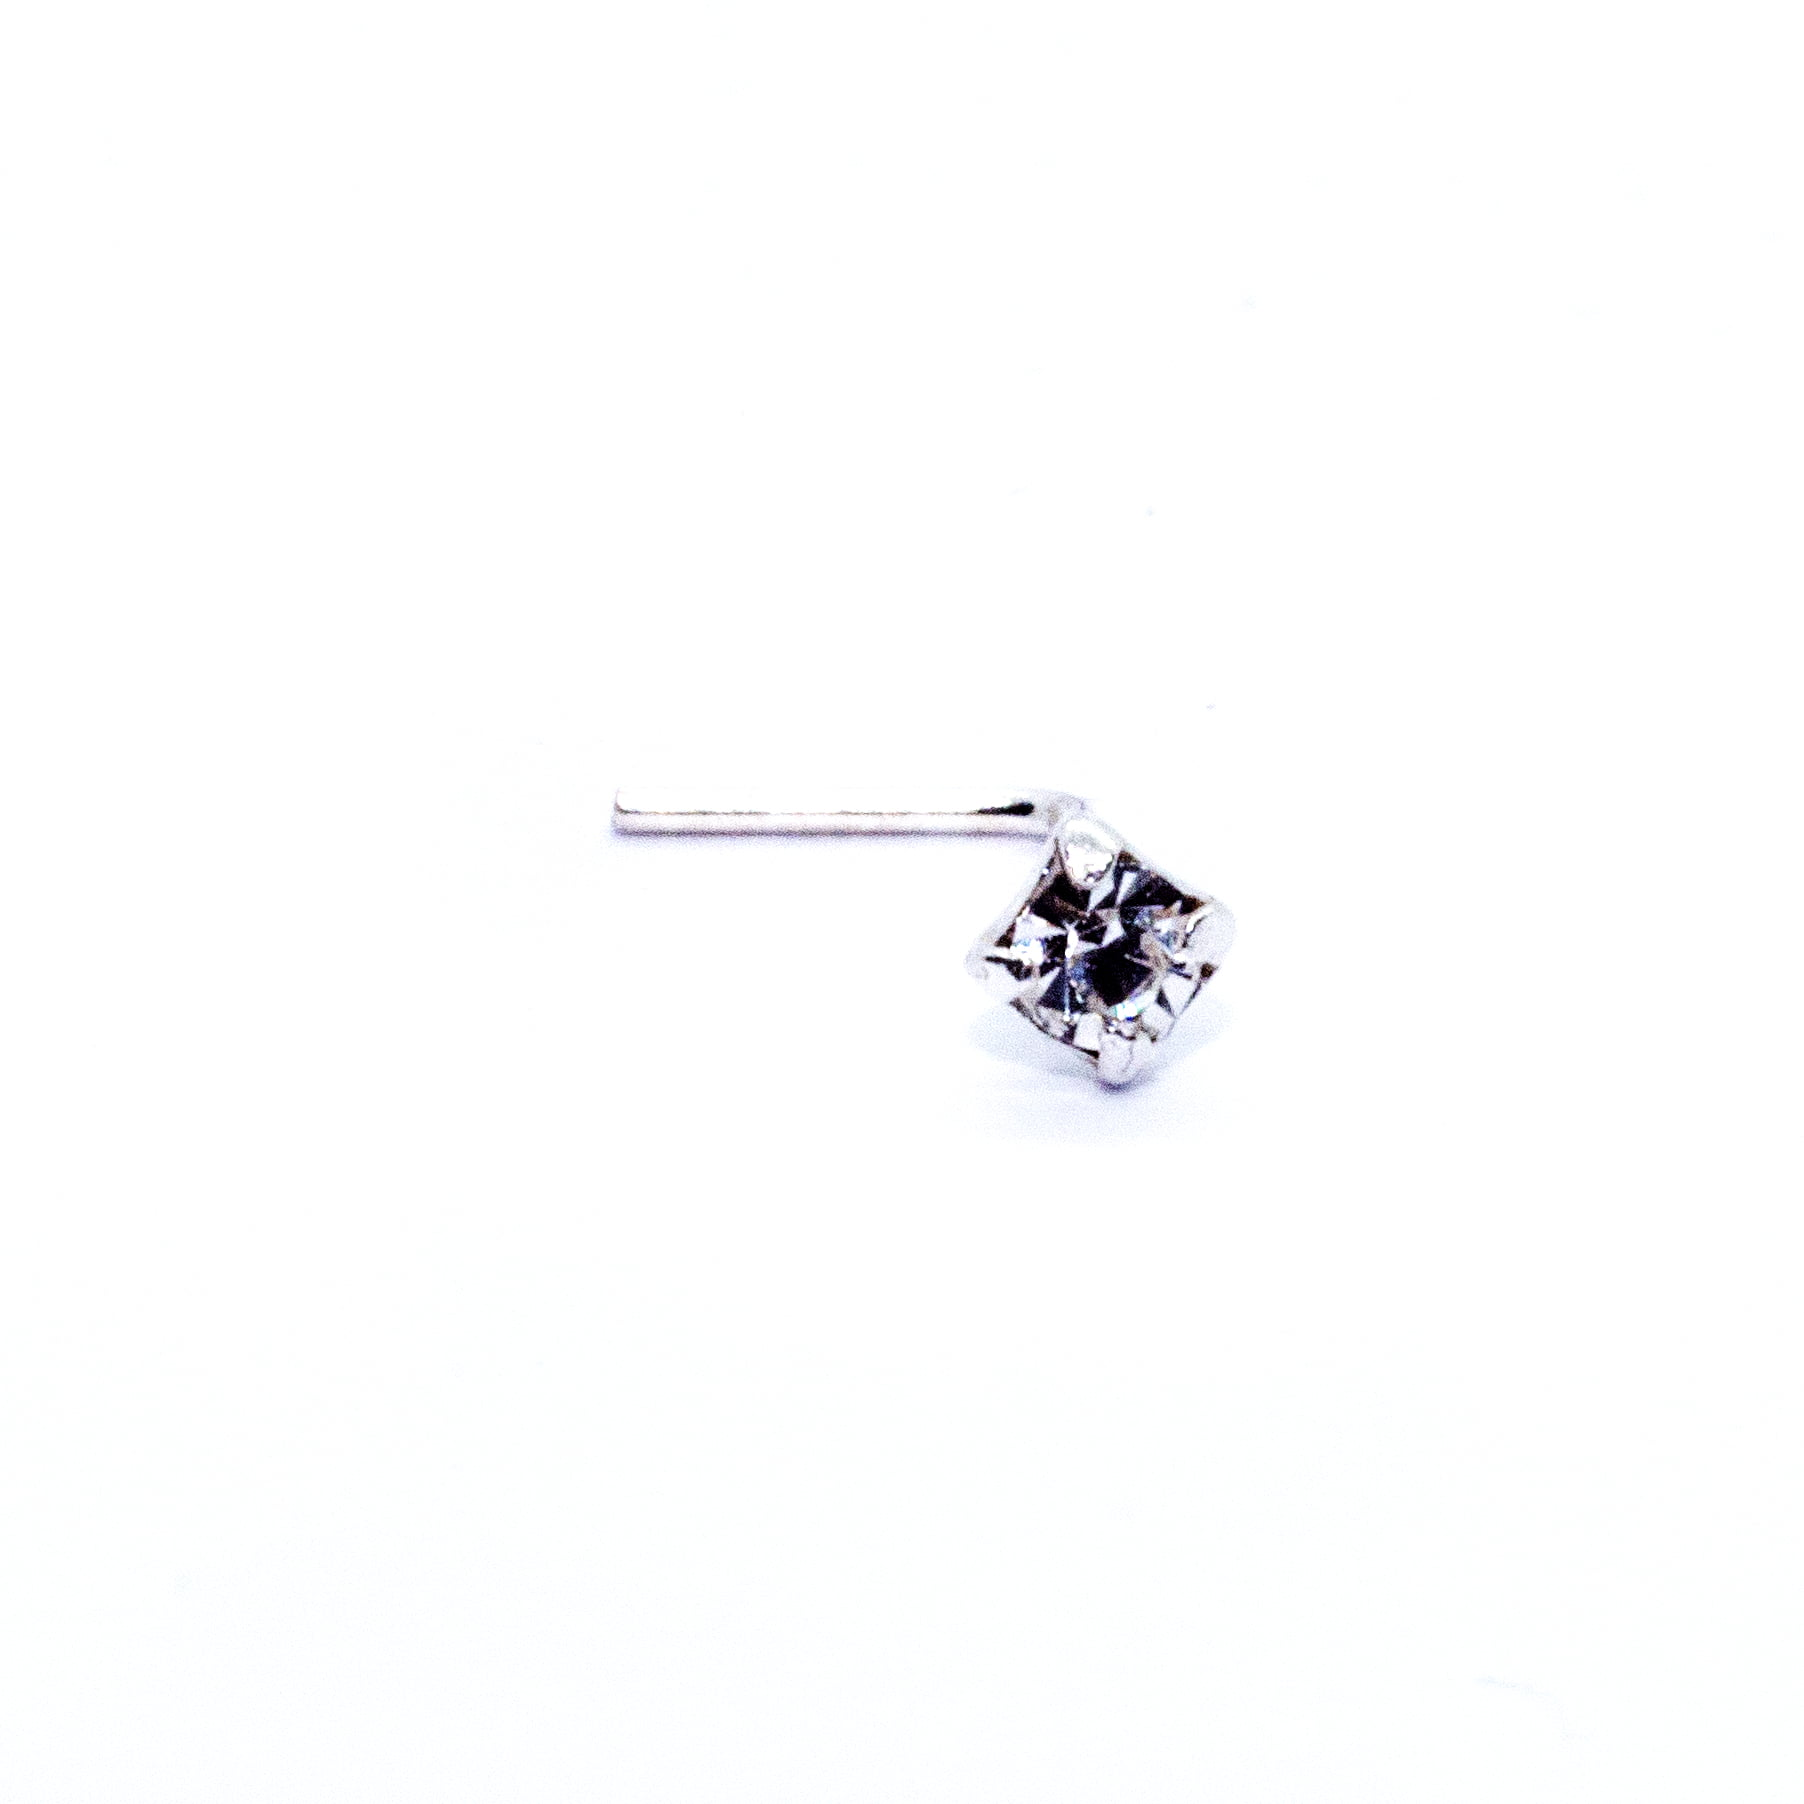 Small square crystal nose stud in silver (alt1)